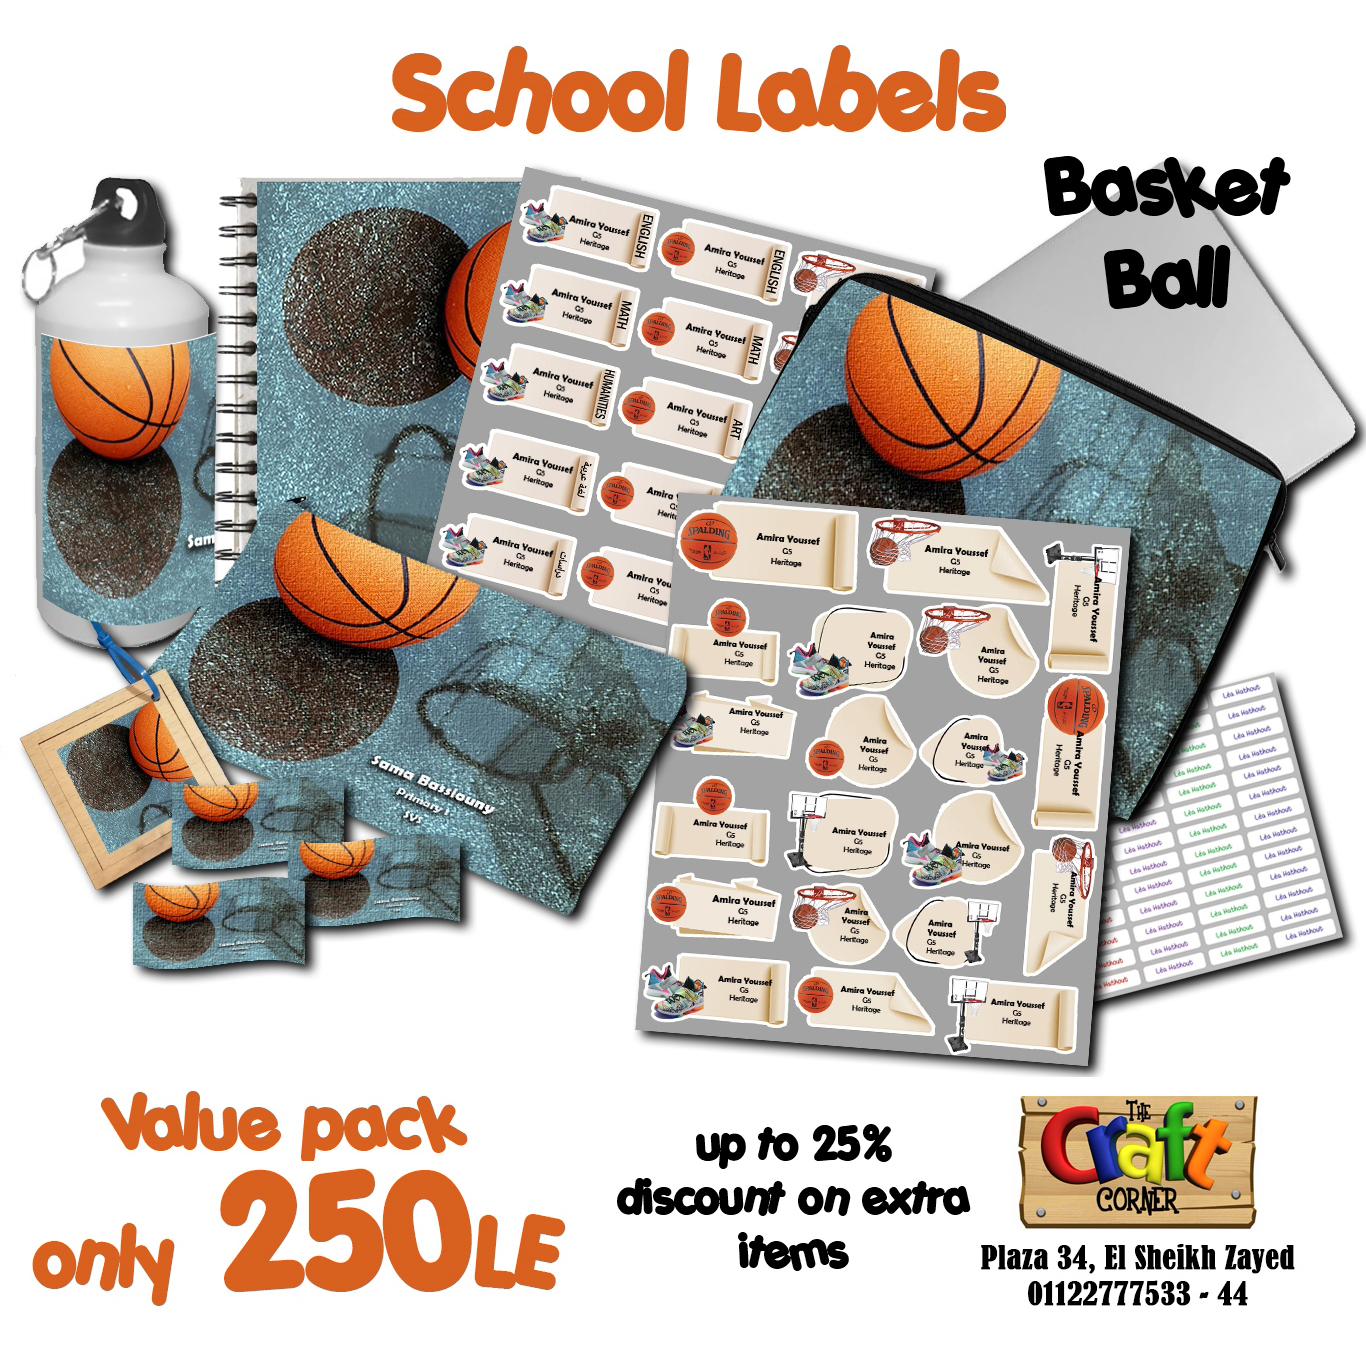 Basket ball ad small